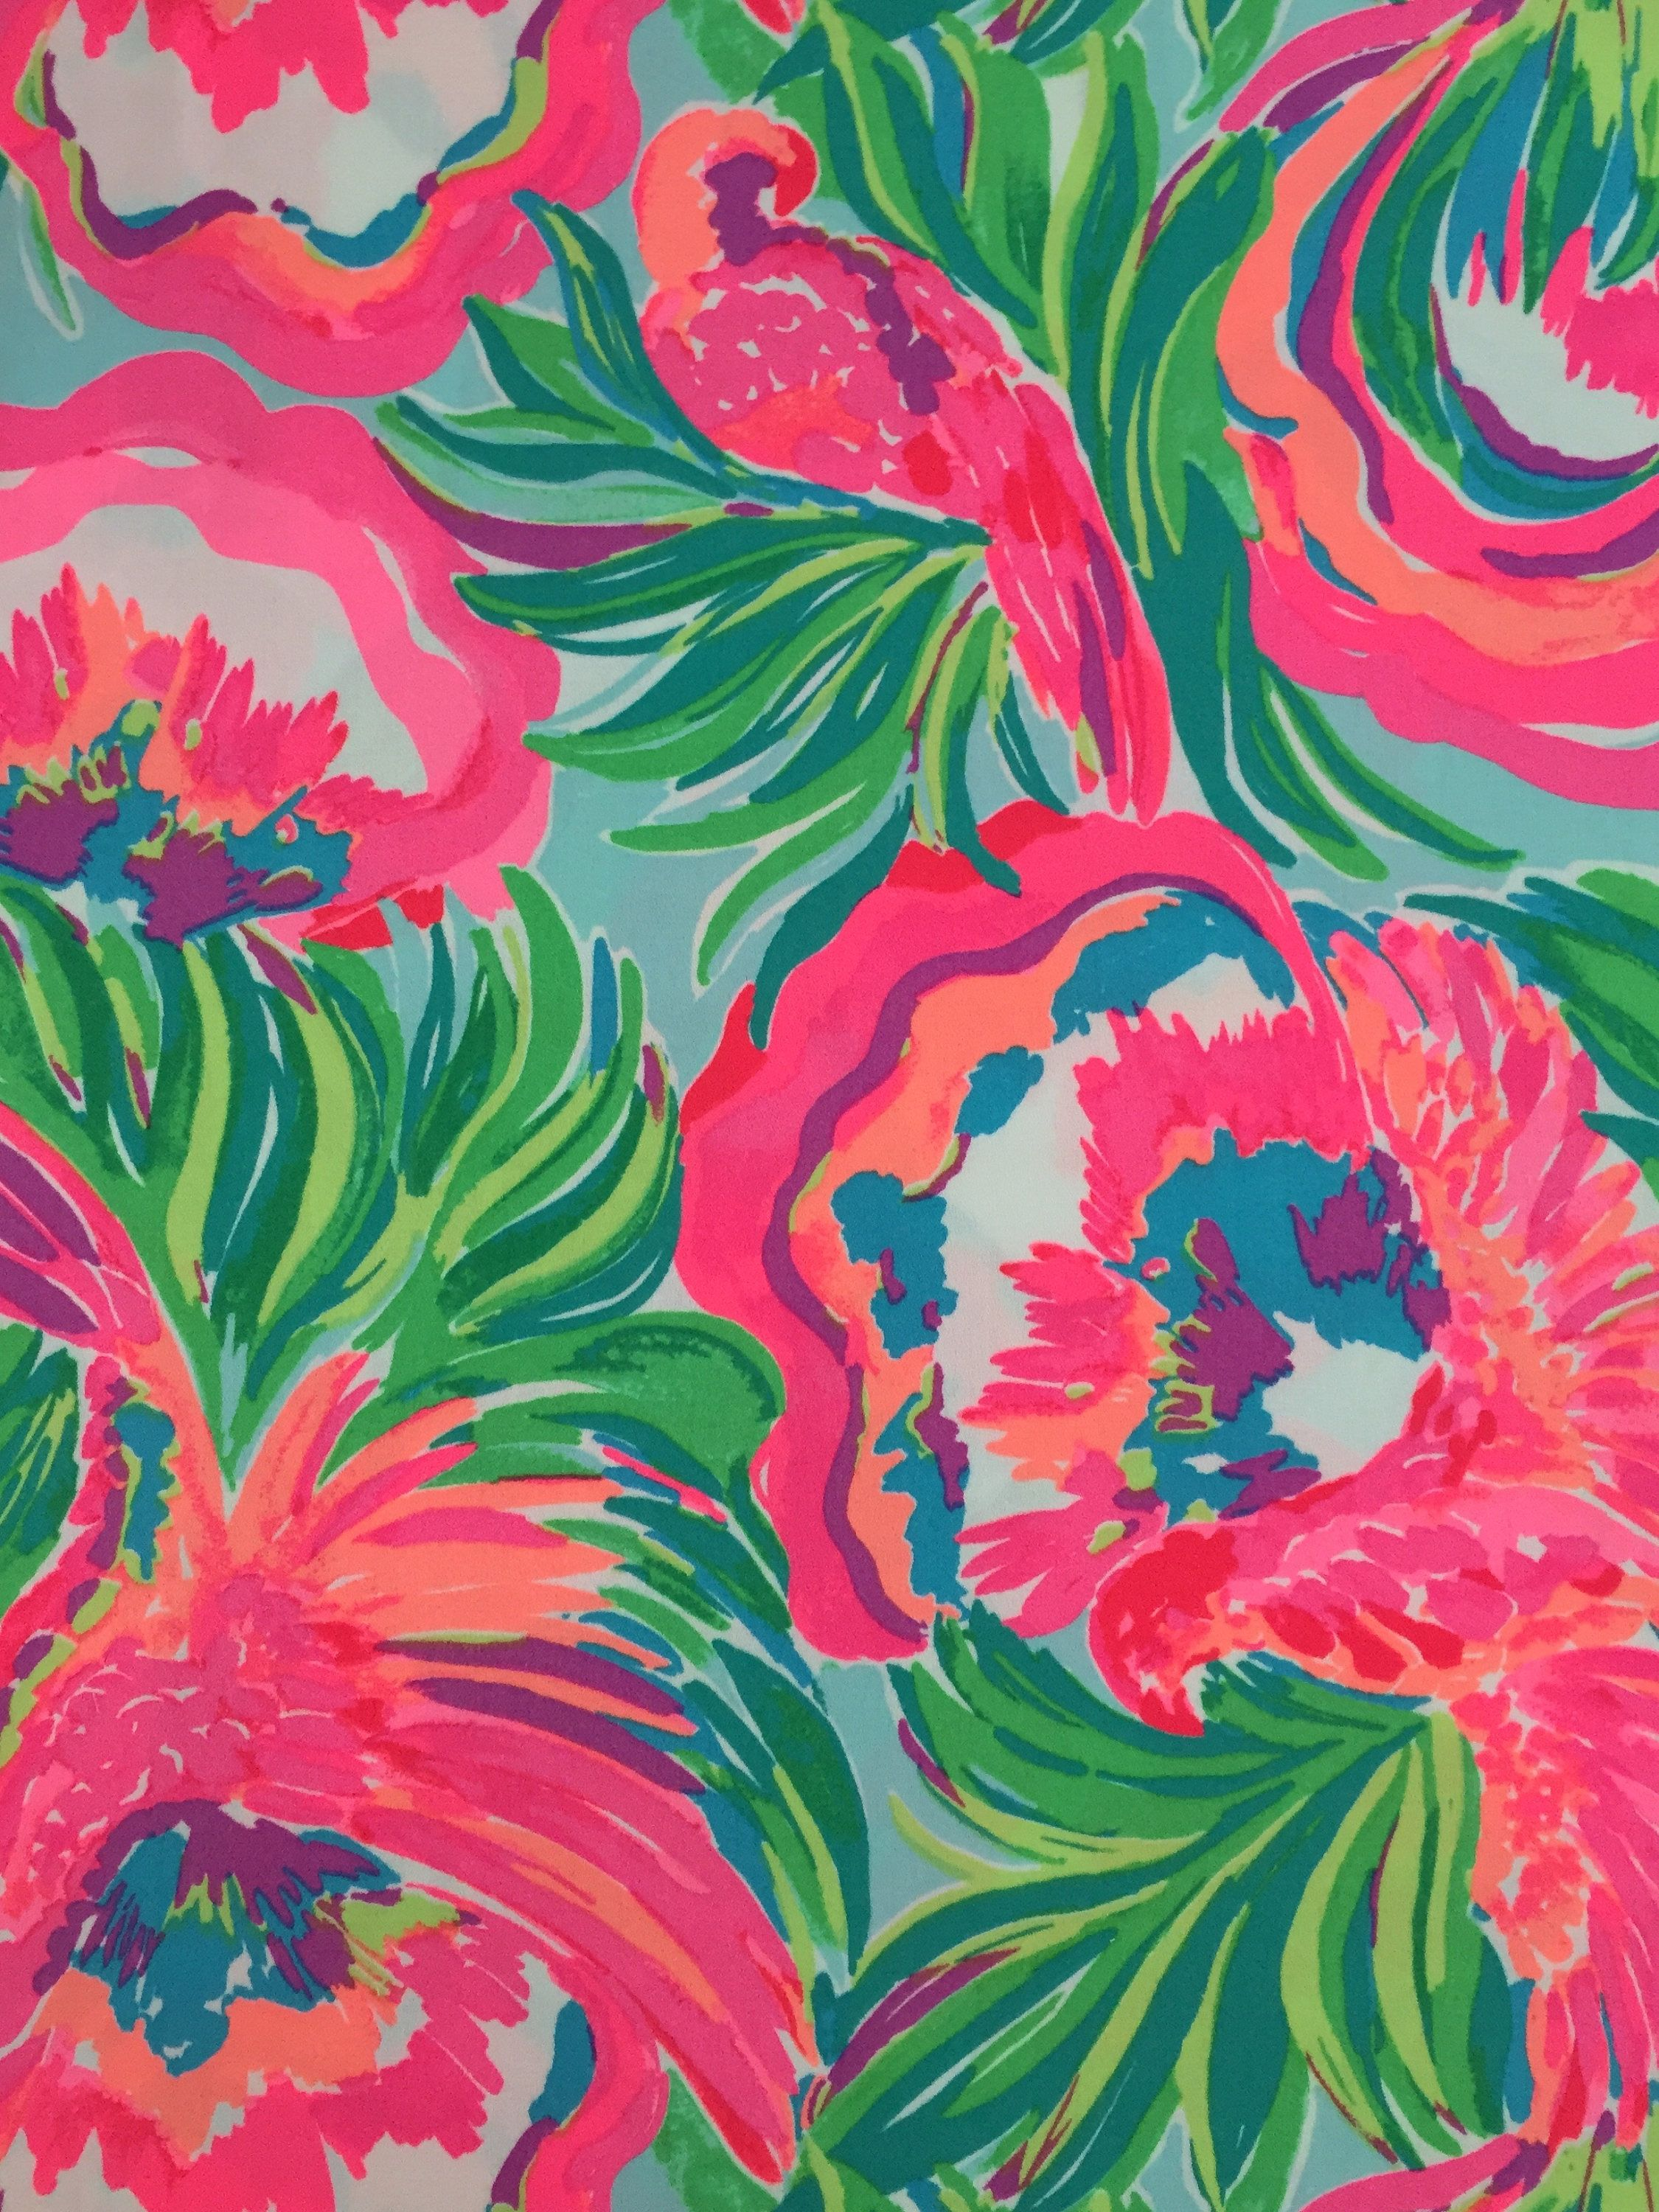 Medium Of Lilly Pulitzer Fabric